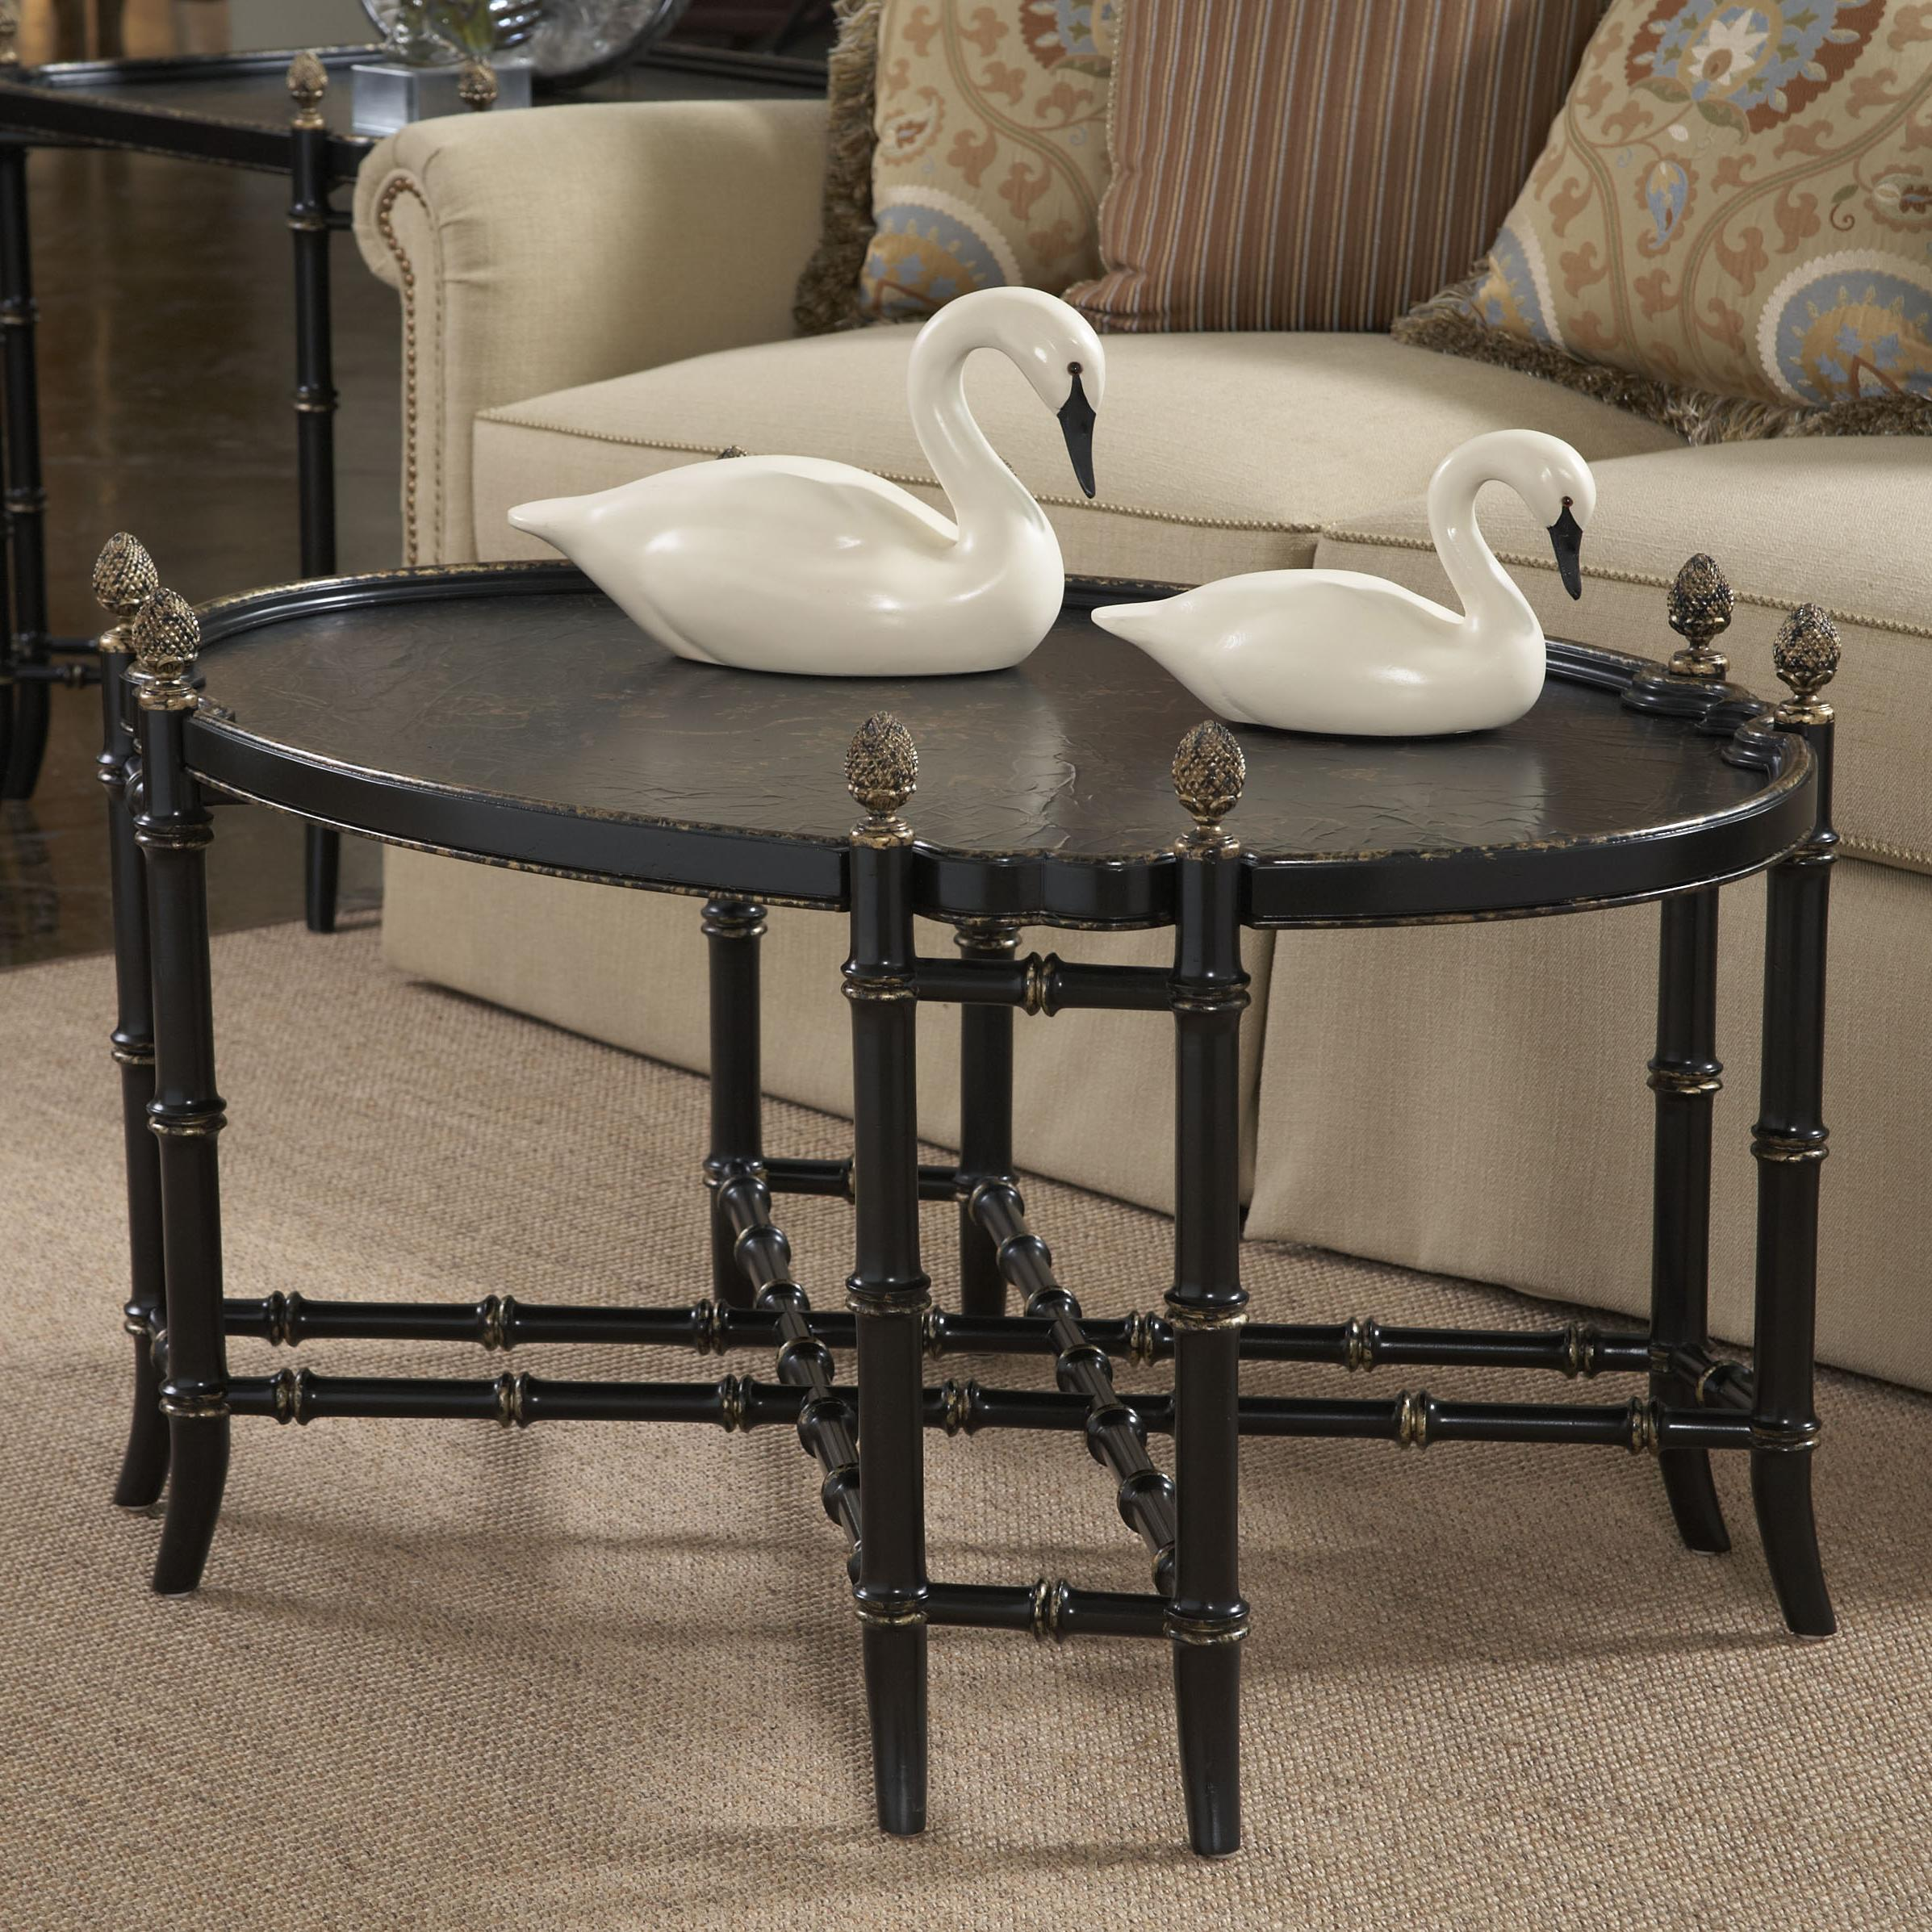 Belfort Signature Belmont New London Chinoiserie Cocktail Table - Item Number: 1020-932